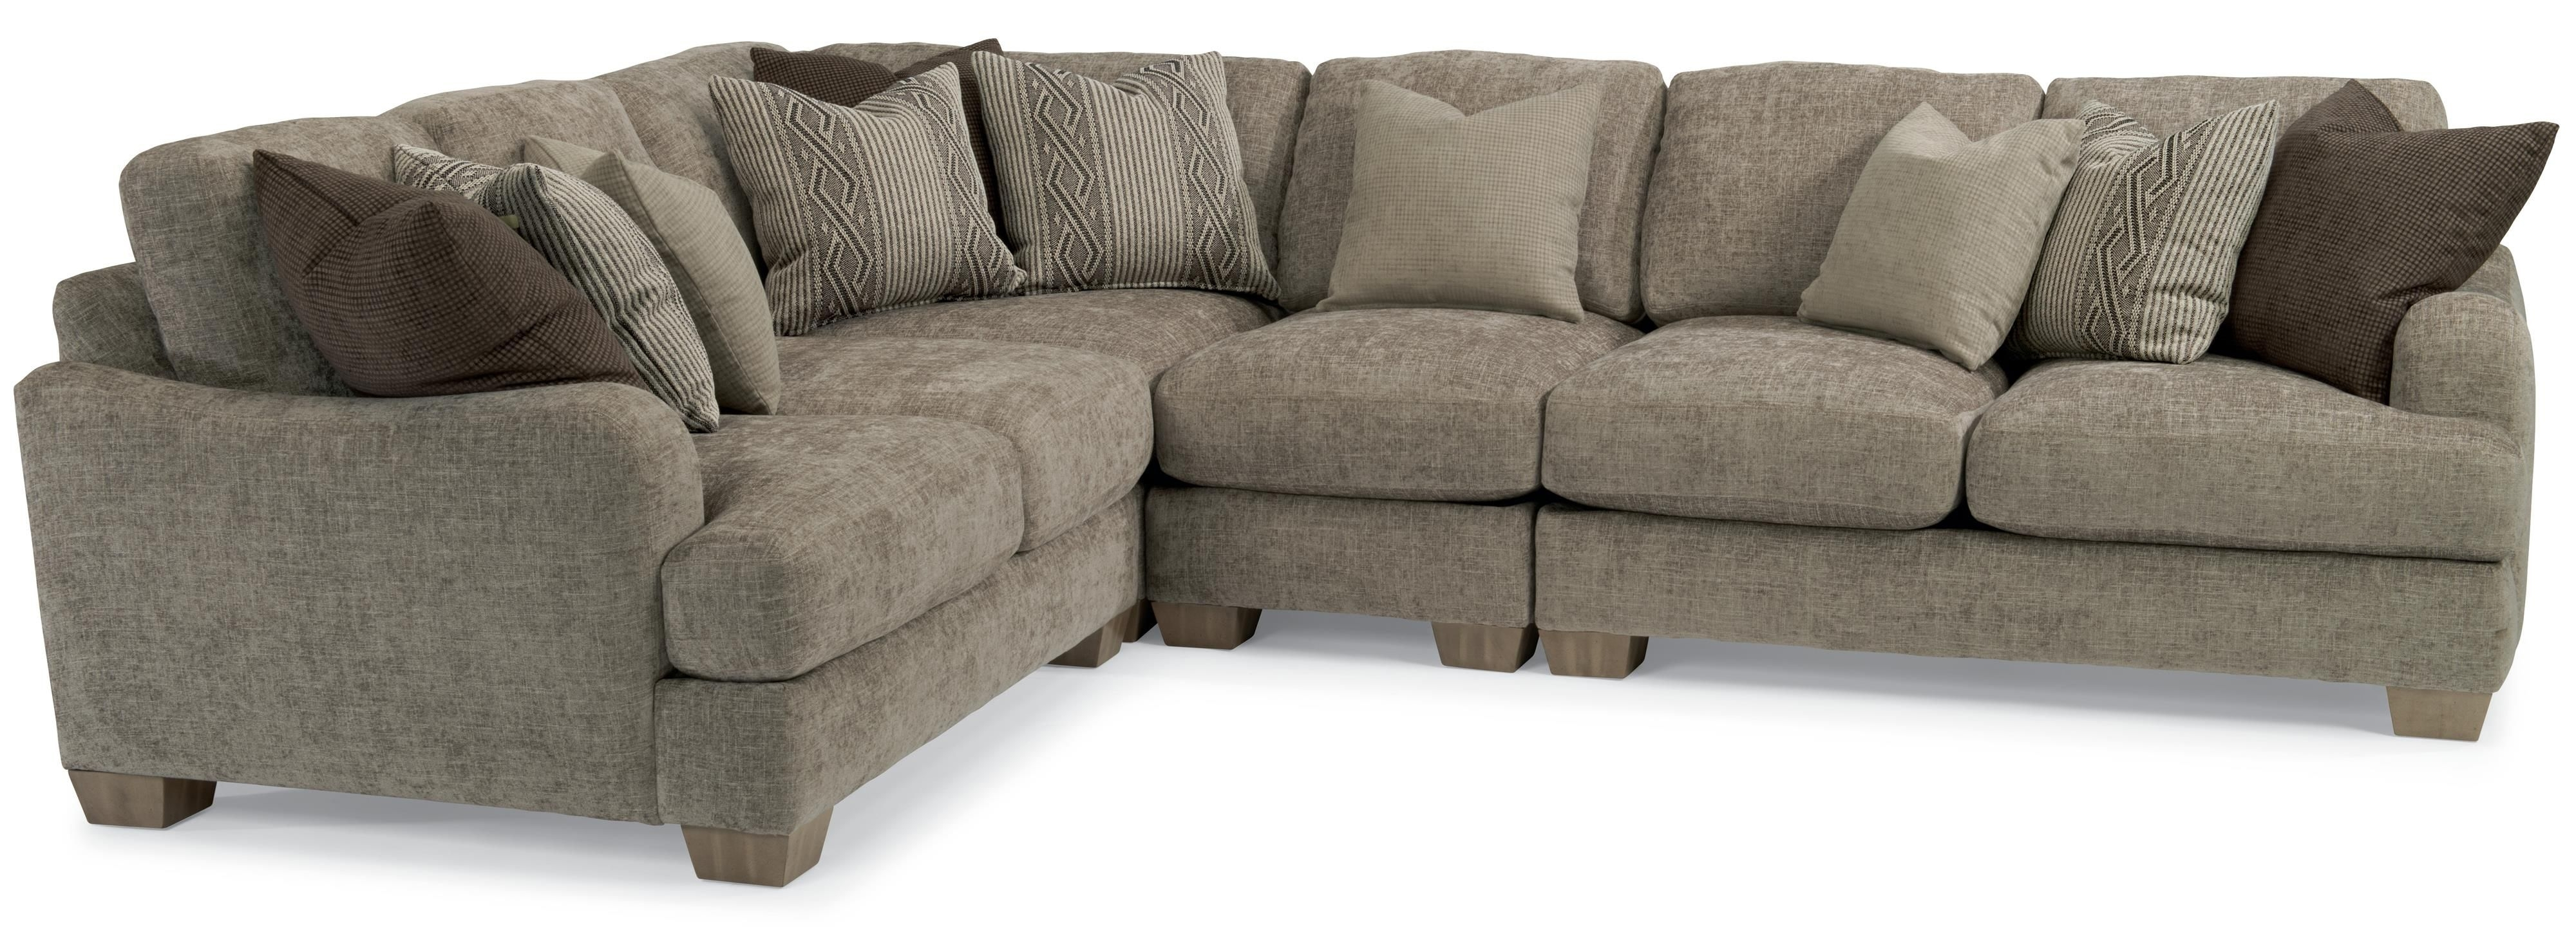 Vanessa Sectional Sofa With Loose Pillow Backflexsteel | Living intended for Homemakers Sectional Sofas (Image 10 of 10)